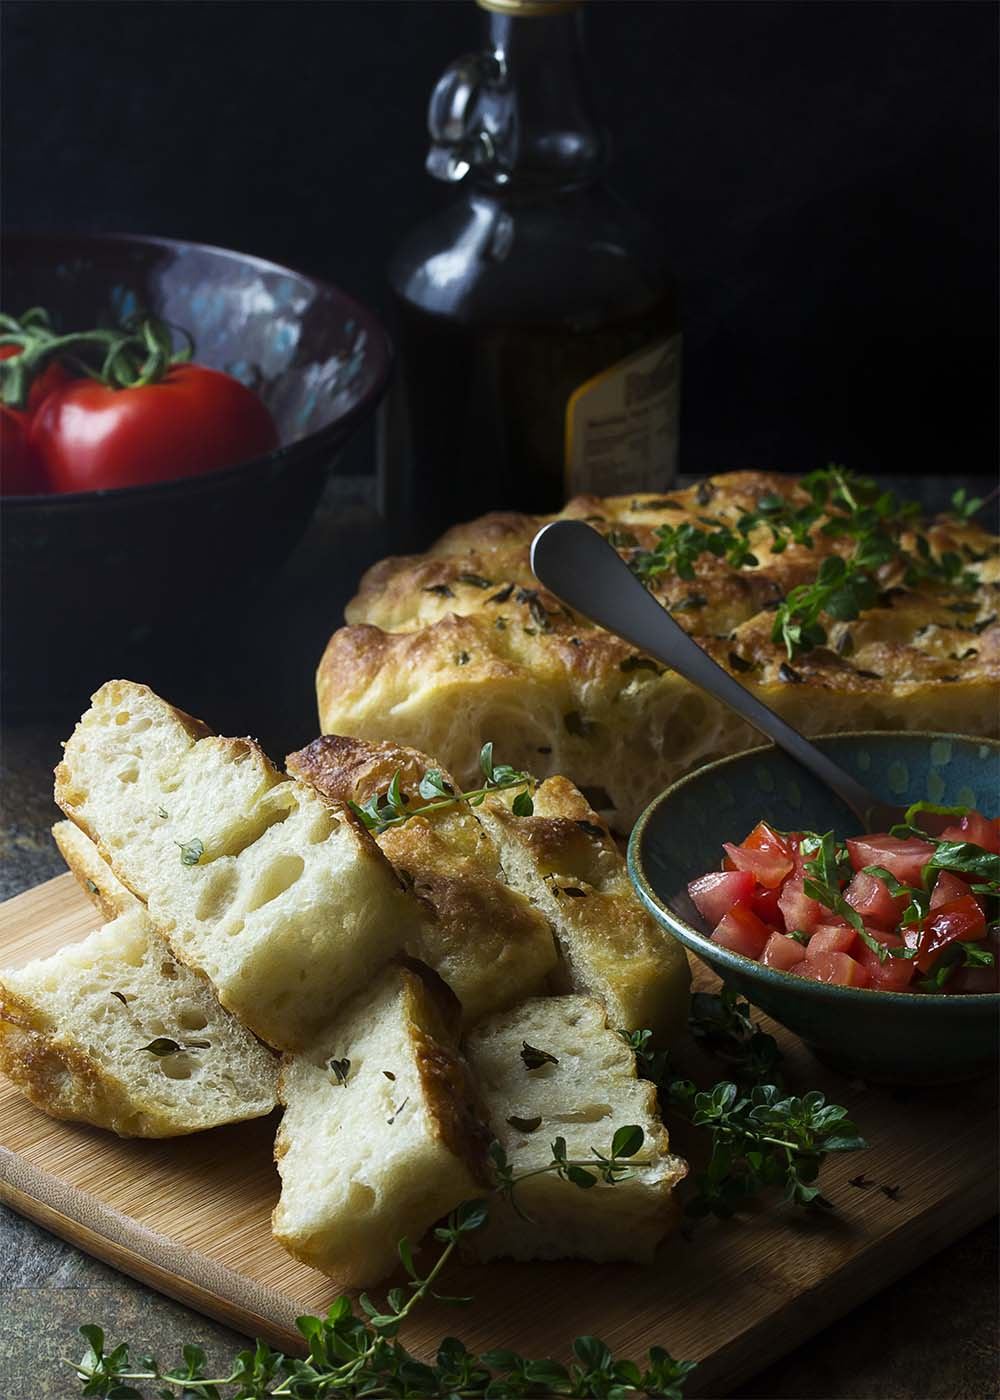 My no-knead focaccia bread with garlic and thyme is made right in a cast iron skillet, giving it a soft and chewy interior and crispy edges. Easy! Great for dinner or for paninis!   justalittlebitofbacon.com